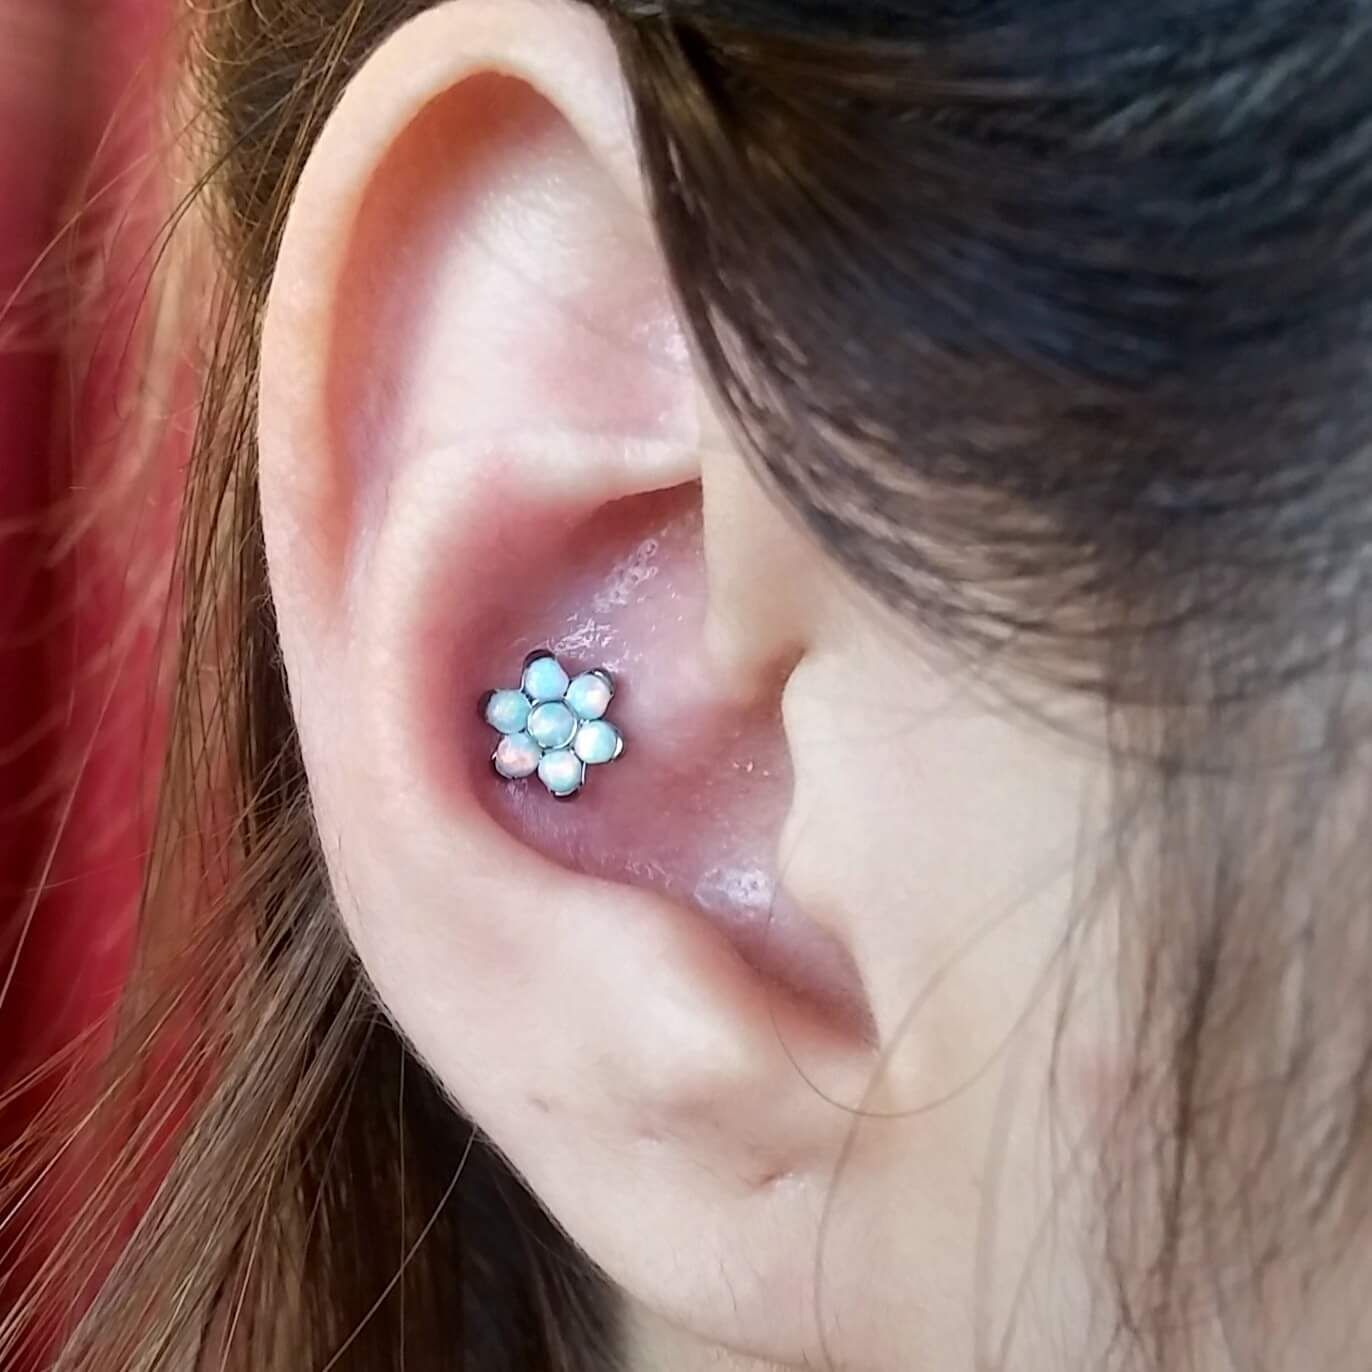 Piercing done by Jade Body jewelry, Boutique, Gifts